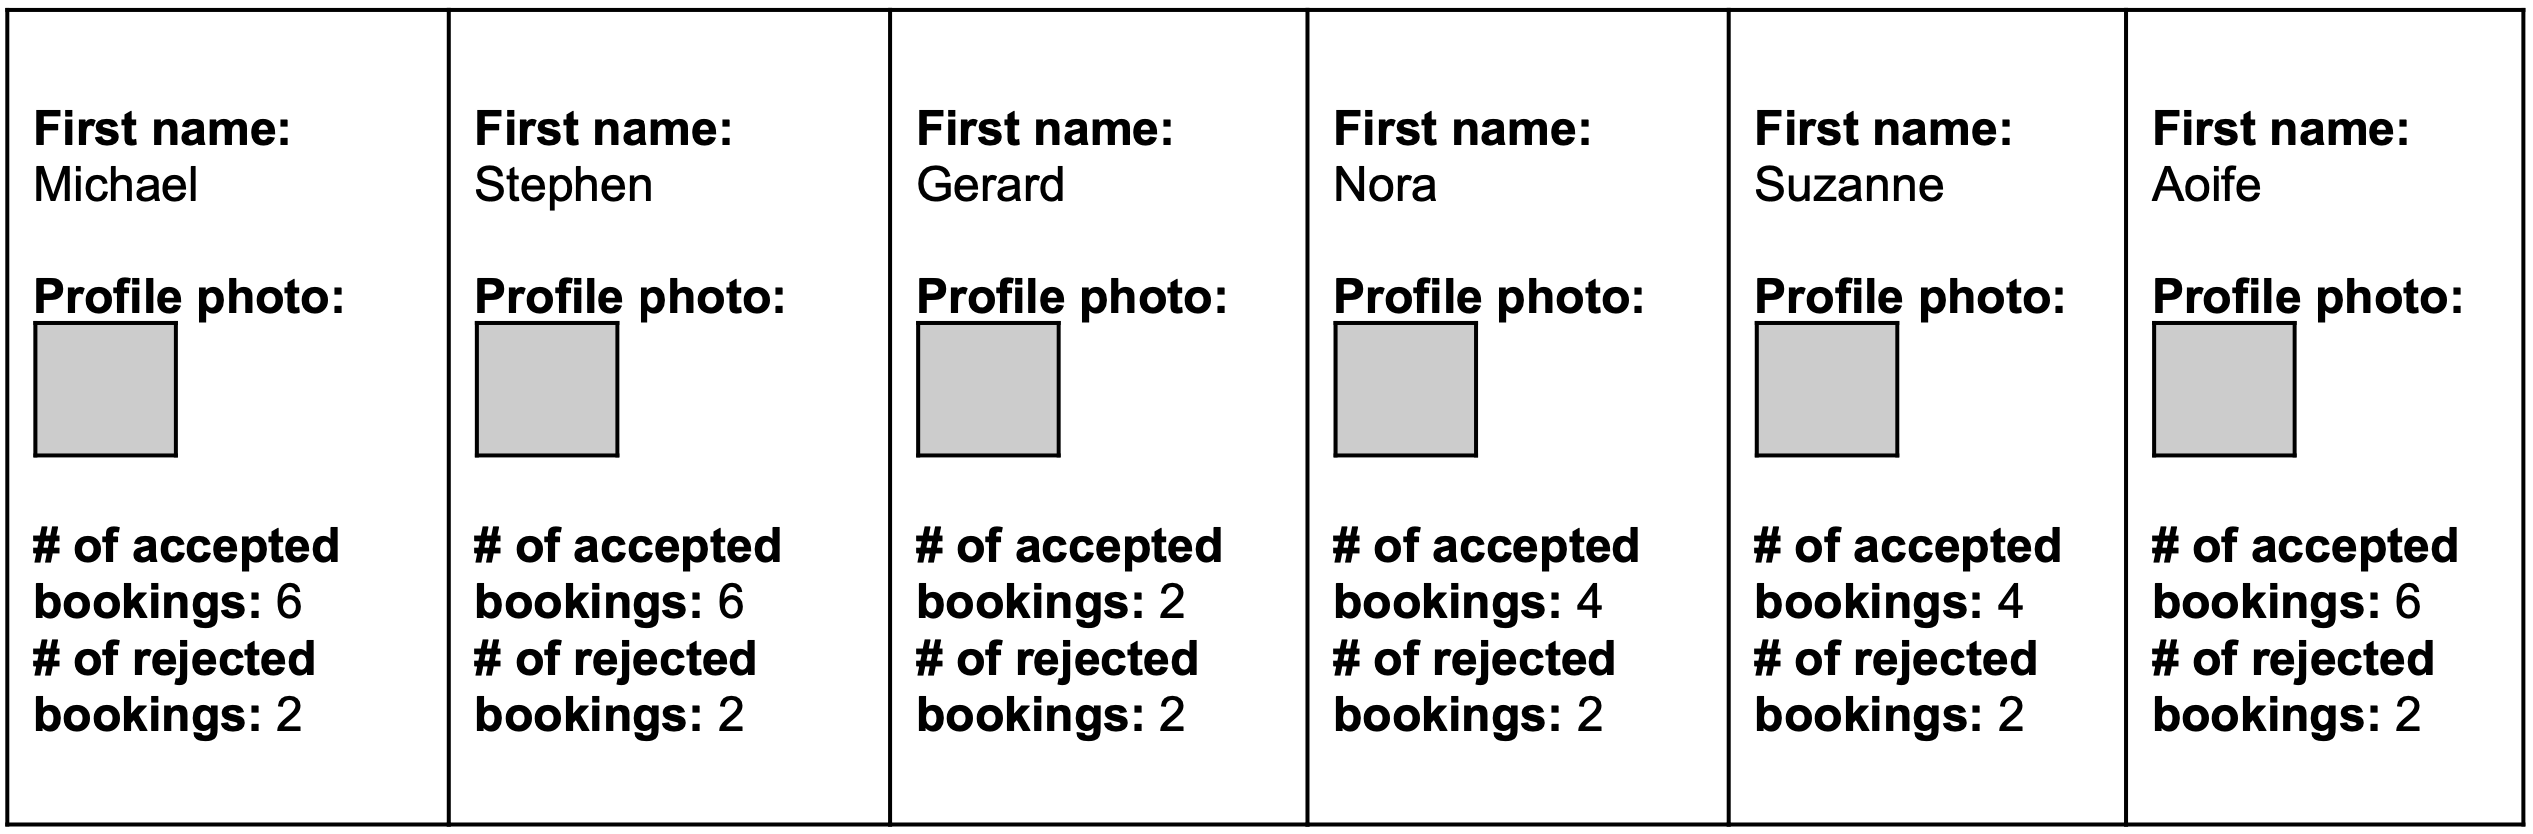 Michael, Stephen, & Aoife: 6 accepted & 2 rejected. Nora & Suzanne: 4 accepted & 2 rejected. Gerard: 2 accepted & 2 rejected.